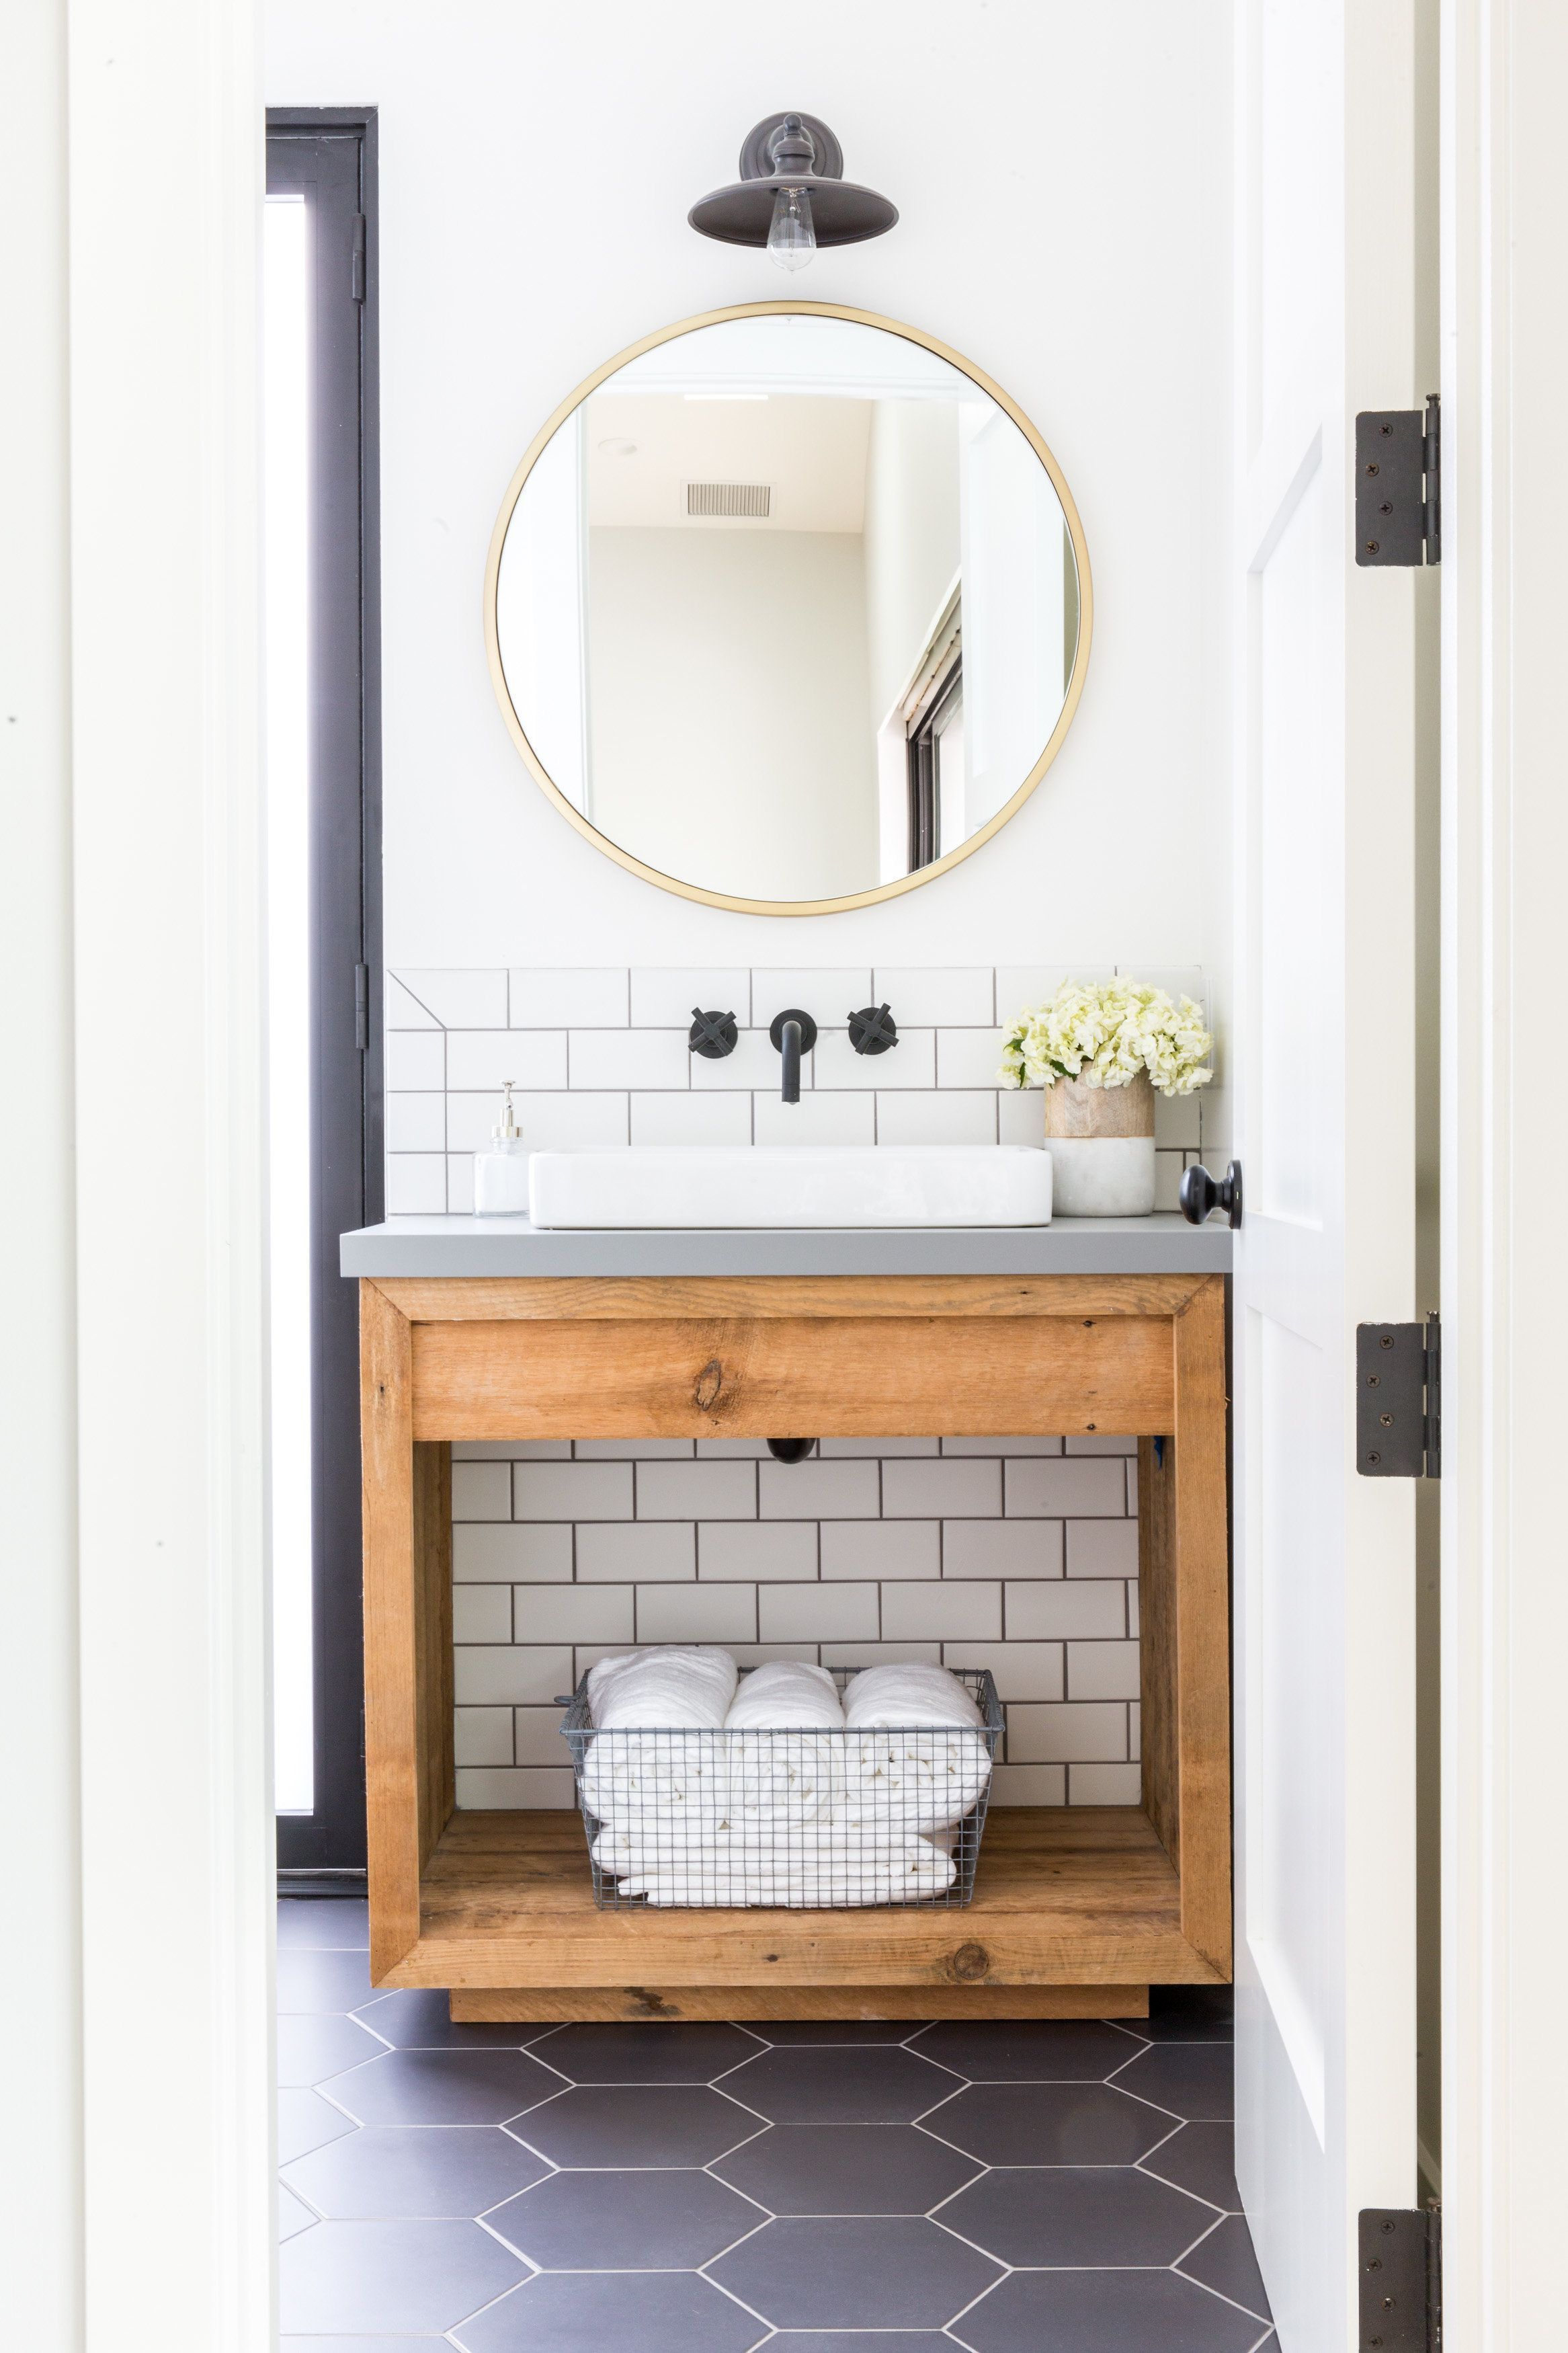 Industrial Farmhouse Bathroom By Lindye Galloway Interiors Bathroomremodelingsmall With Images Modern Farmhouse Bathroom Industrial Farmhouse Bathroom Small Bathroom